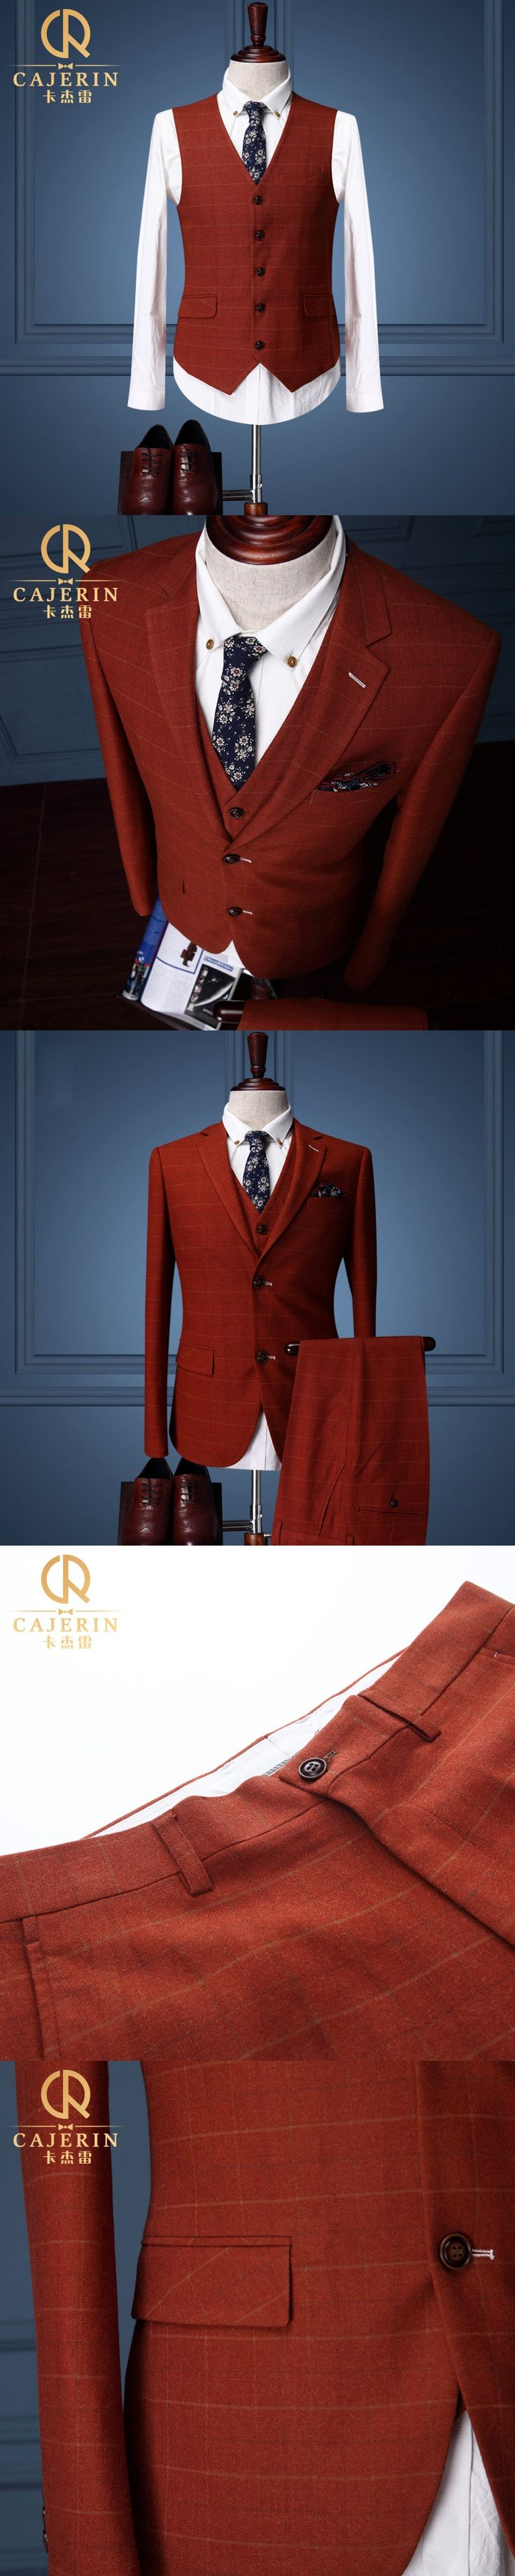 Brand Clothing Mens Prom Suits Wedding Groom Red Tuxedo Jacket Slim Fit Suit Men High Quality Single Breasted Gentleman Plaid